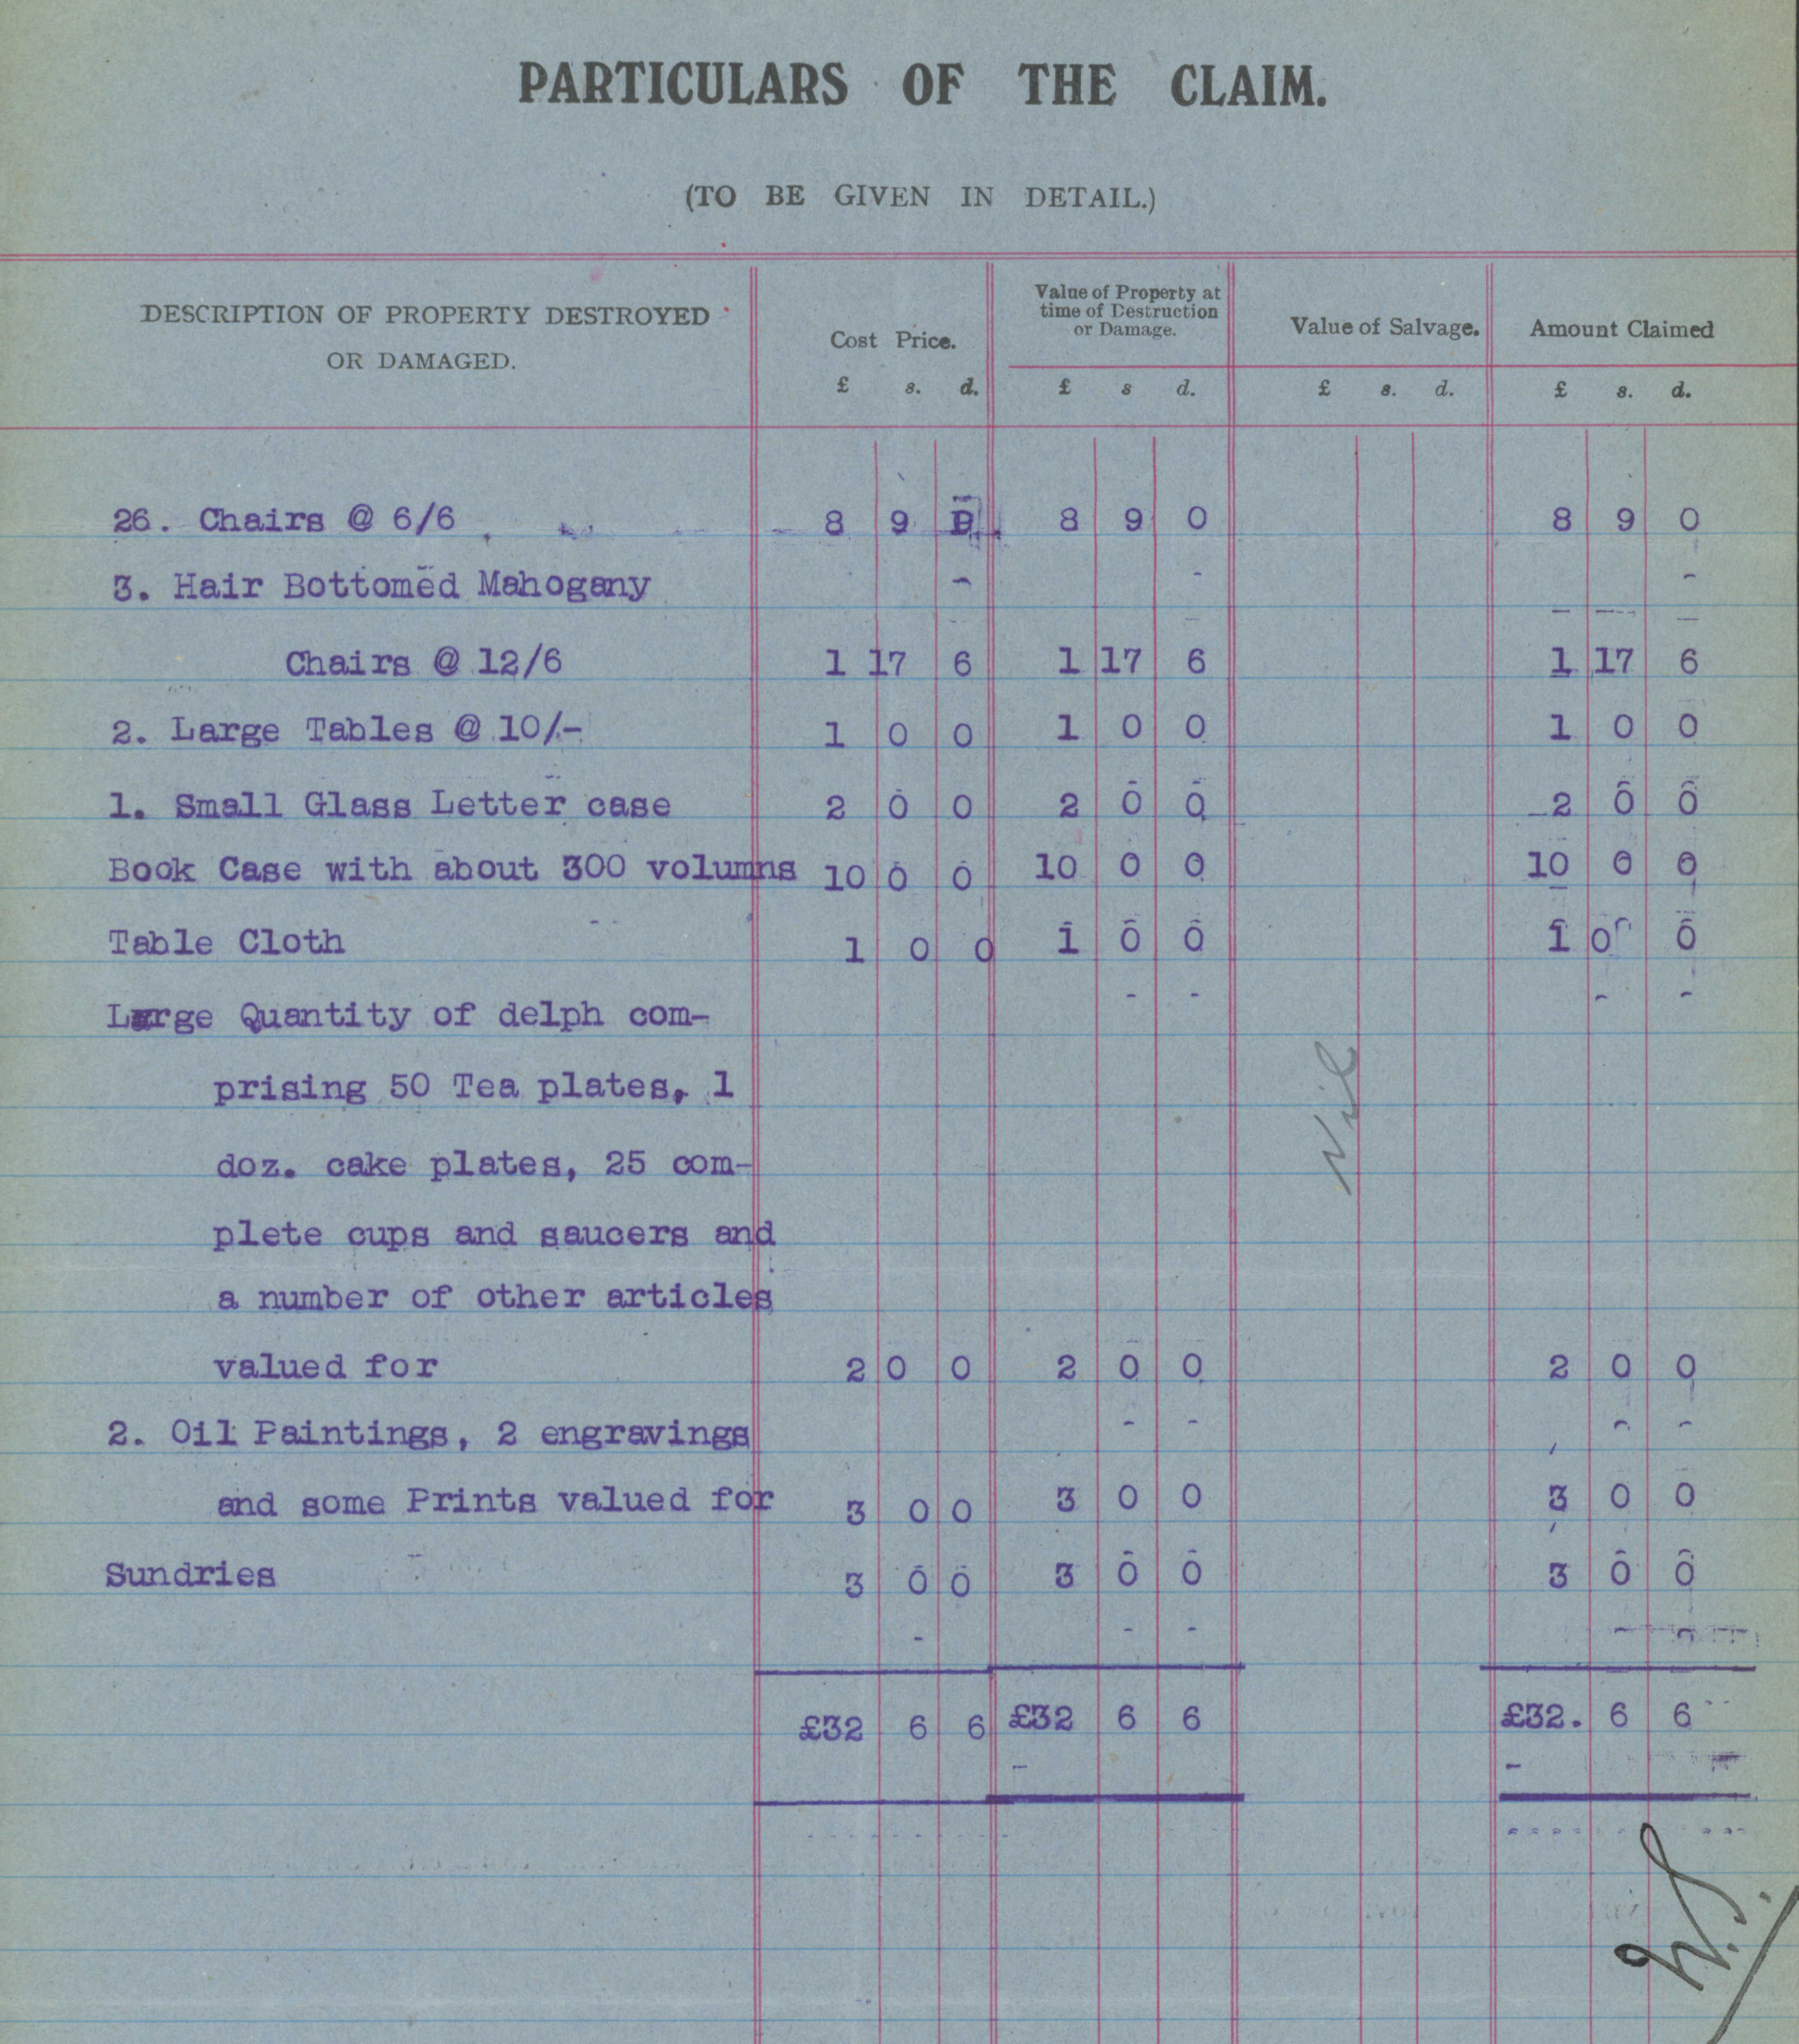 Details of claim lodged by Walter Carpenter (Image courtesy : National Archives)